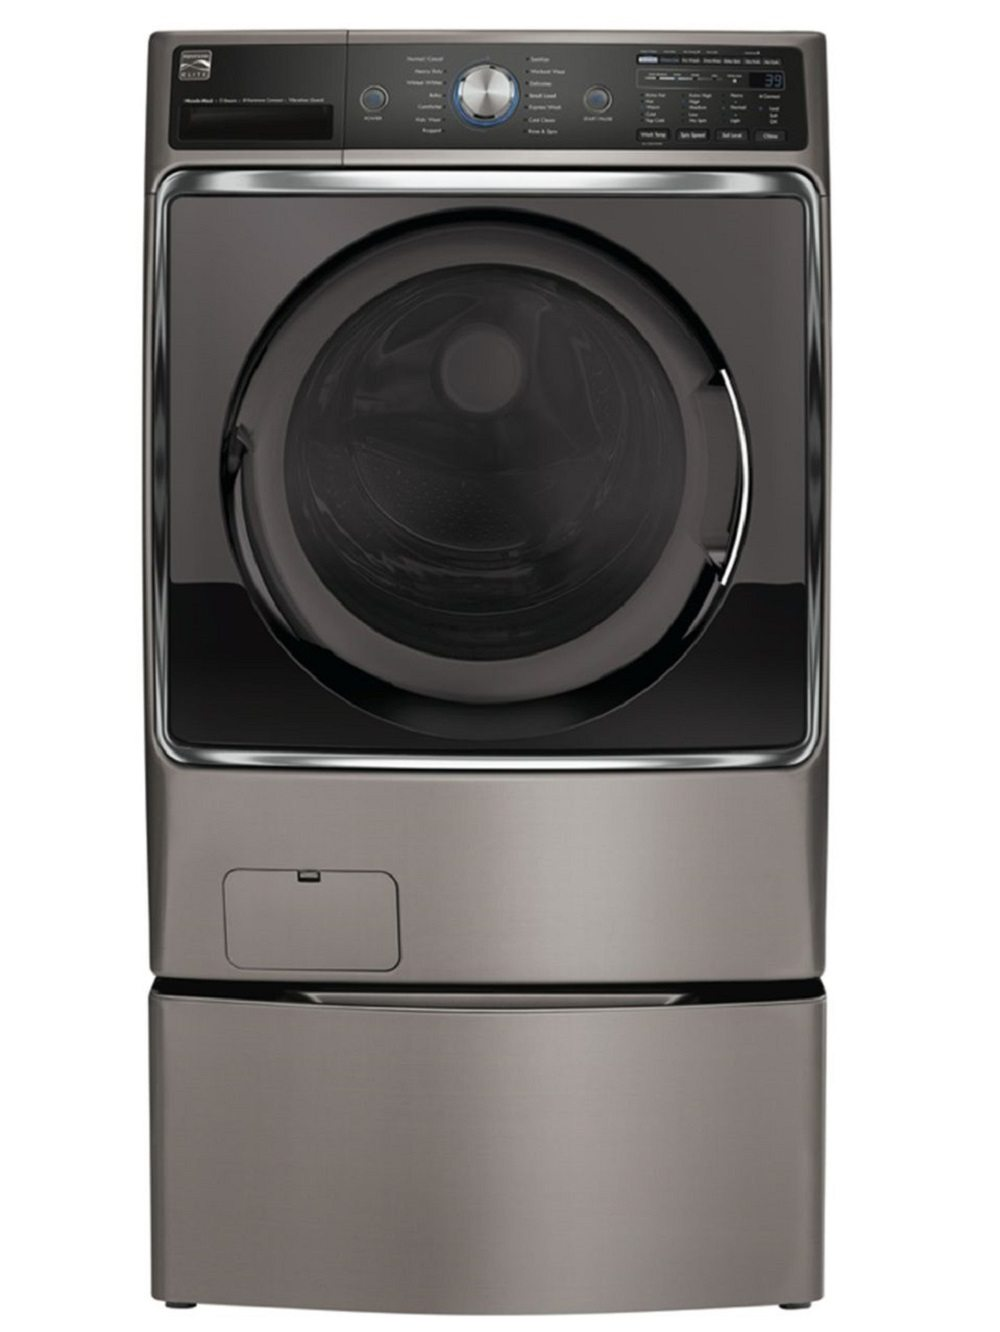 Best top load washers on the market - The 2016 Kenmore Front Loading Washing Machine